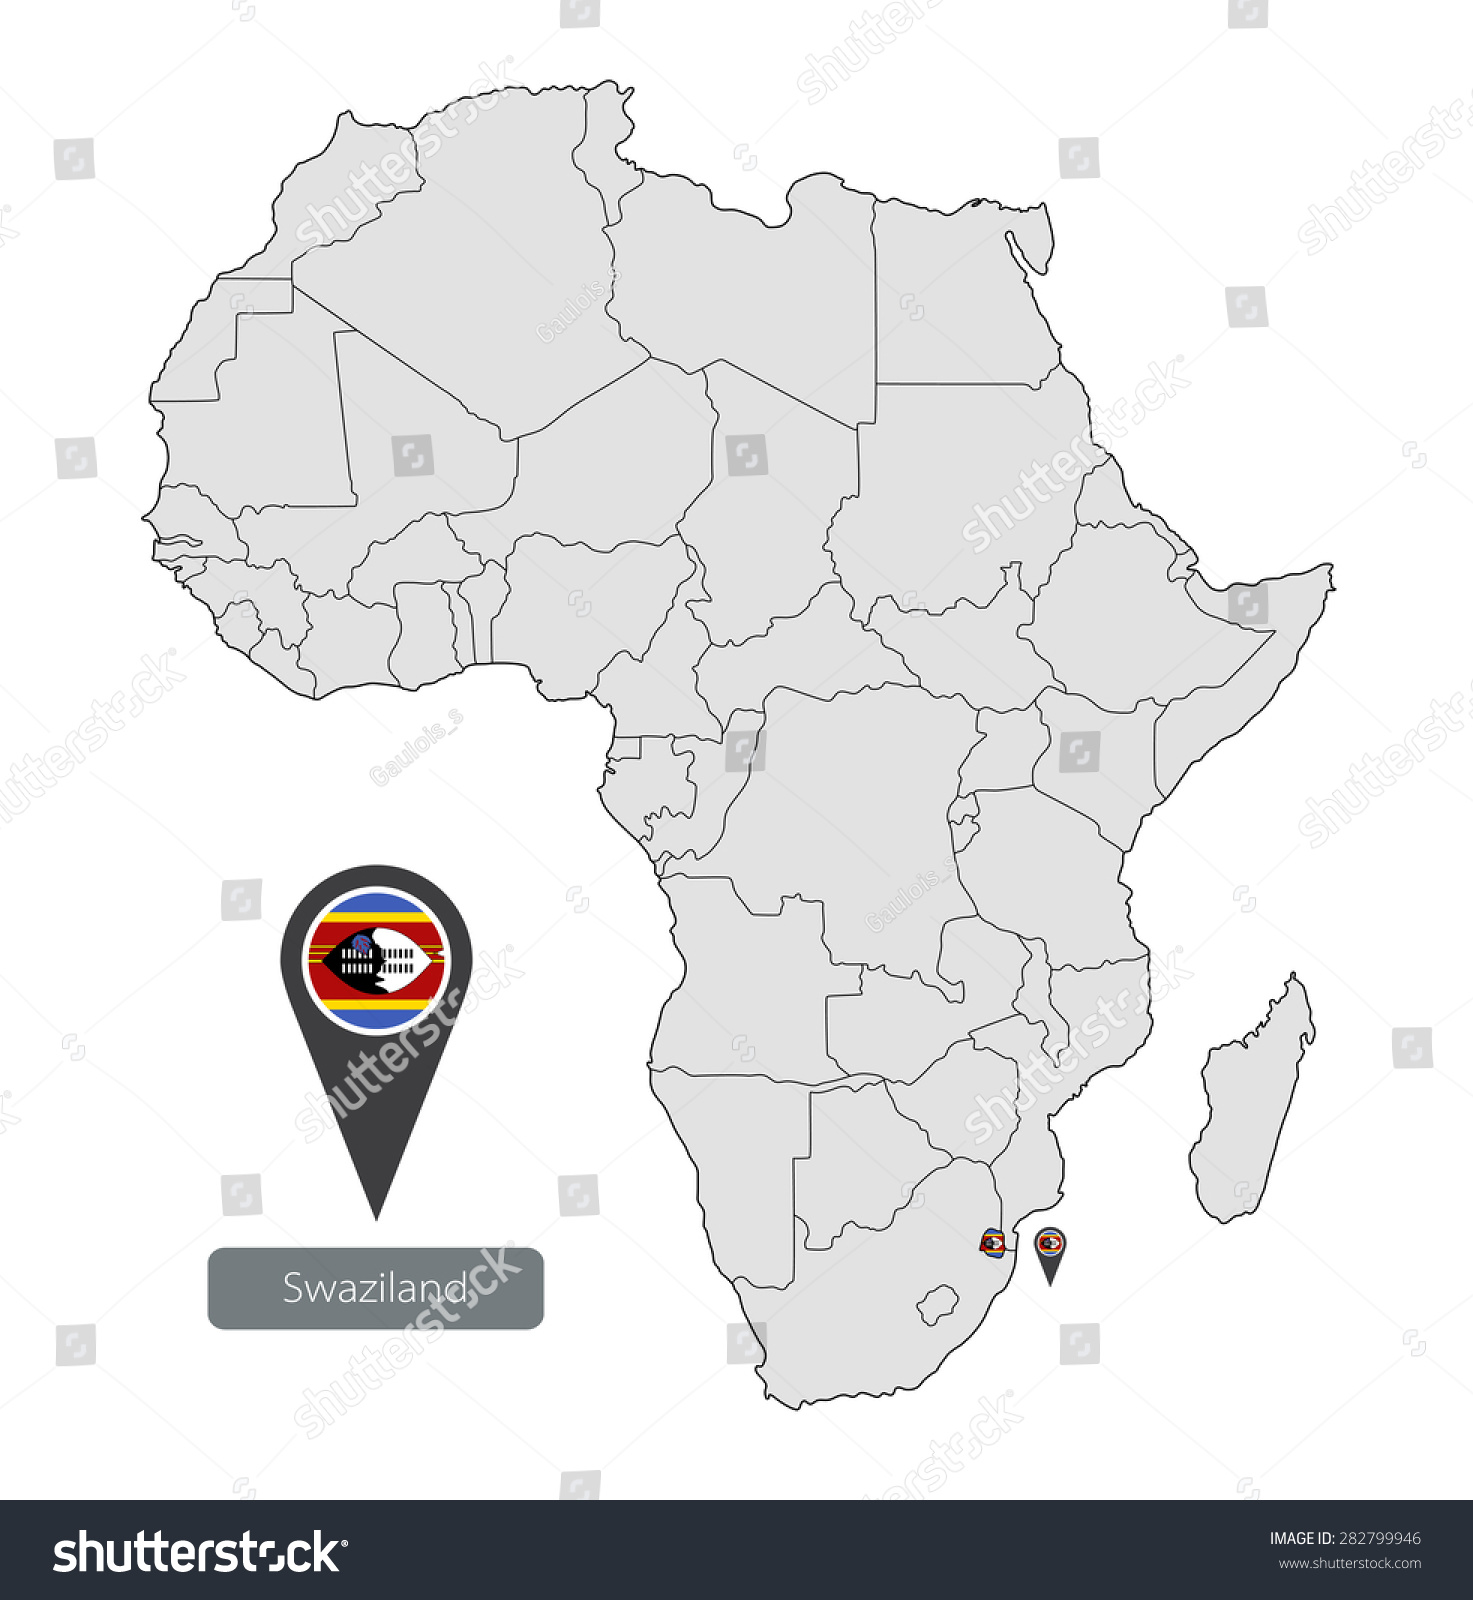 Map Swaziland Official Flag Location On Stock Vector (Royalty Free ...